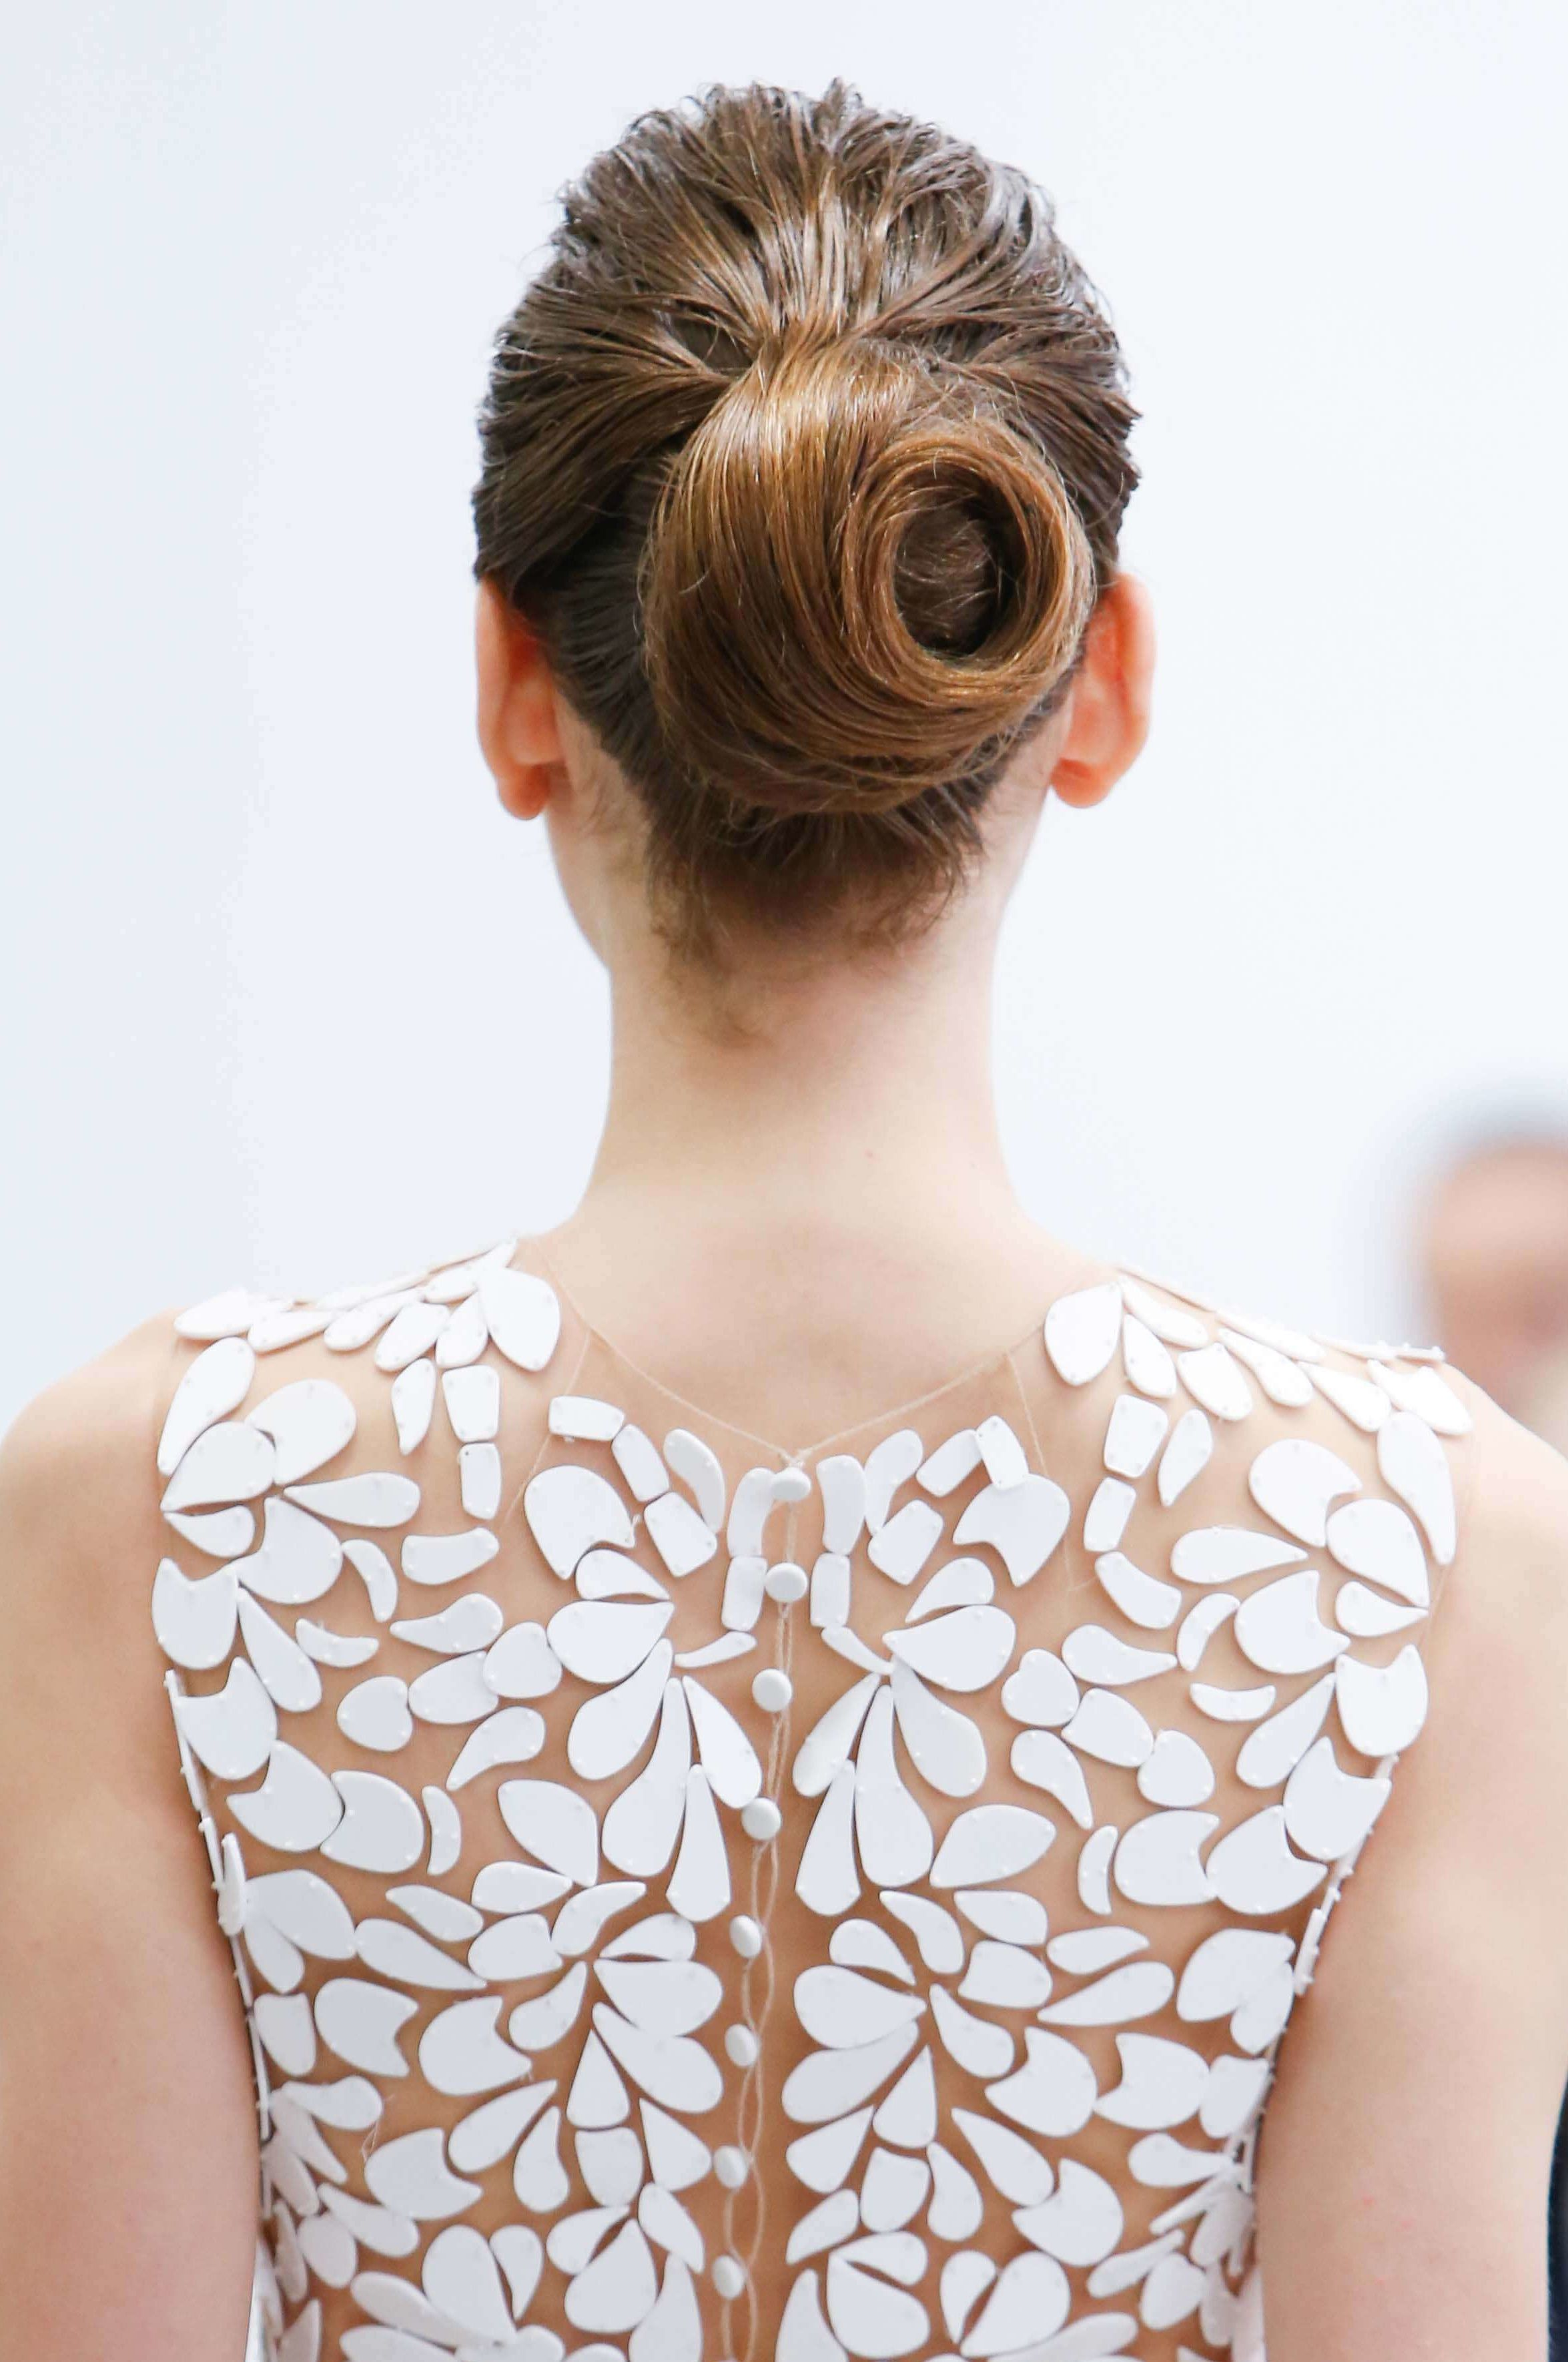 3 Elegant wedding hairstyles for medium hair | All Things Hair - From hair experts at Unilever